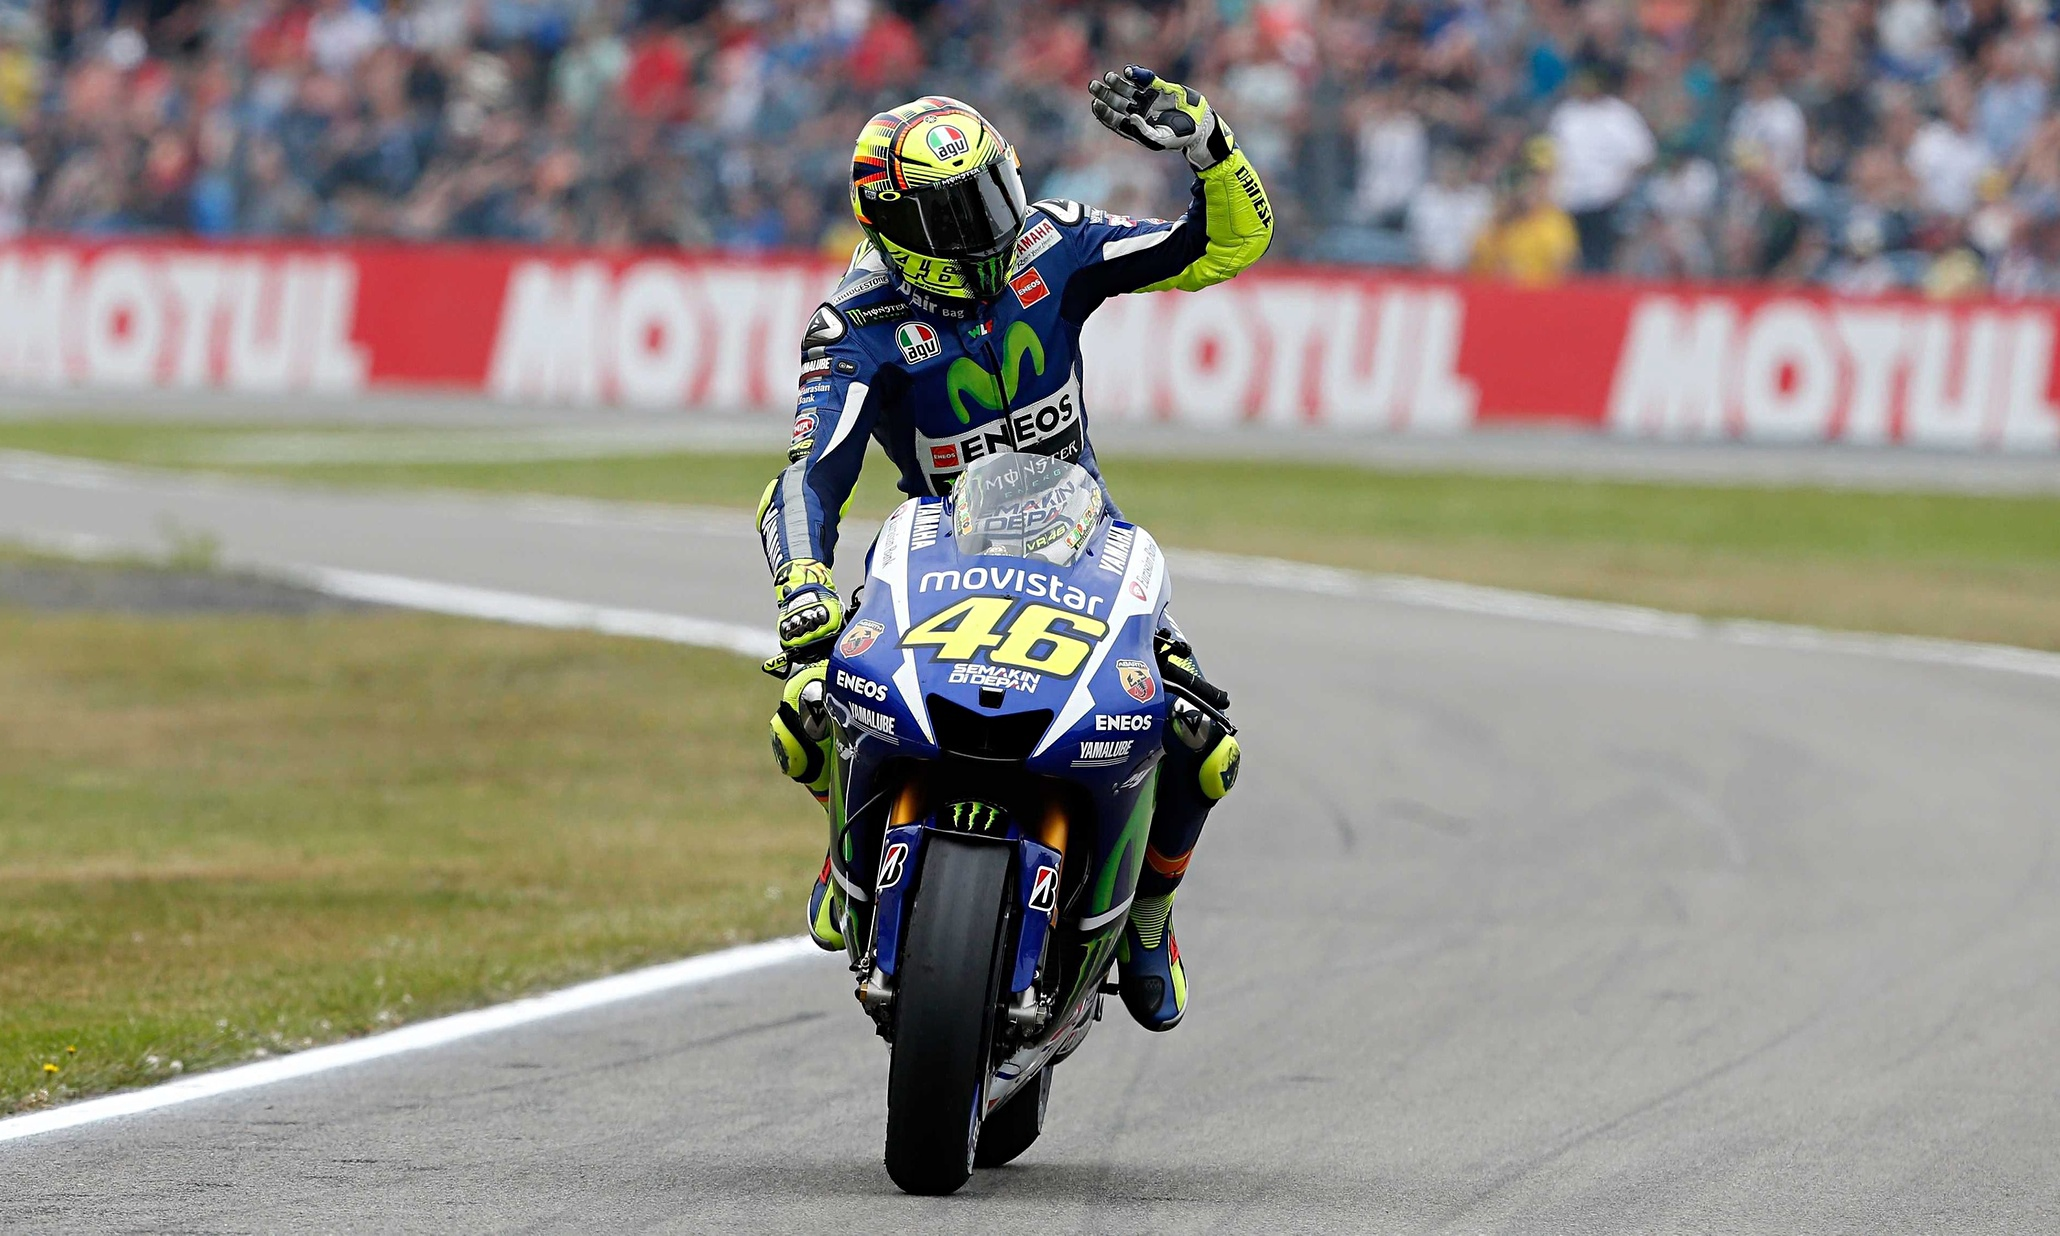 https://static-secure.guim.co.uk/sys-images/Guardian/Pix/pictures/2015/6/26/1435337969190/Valentino-Rossi-in-Assen-009.jpg